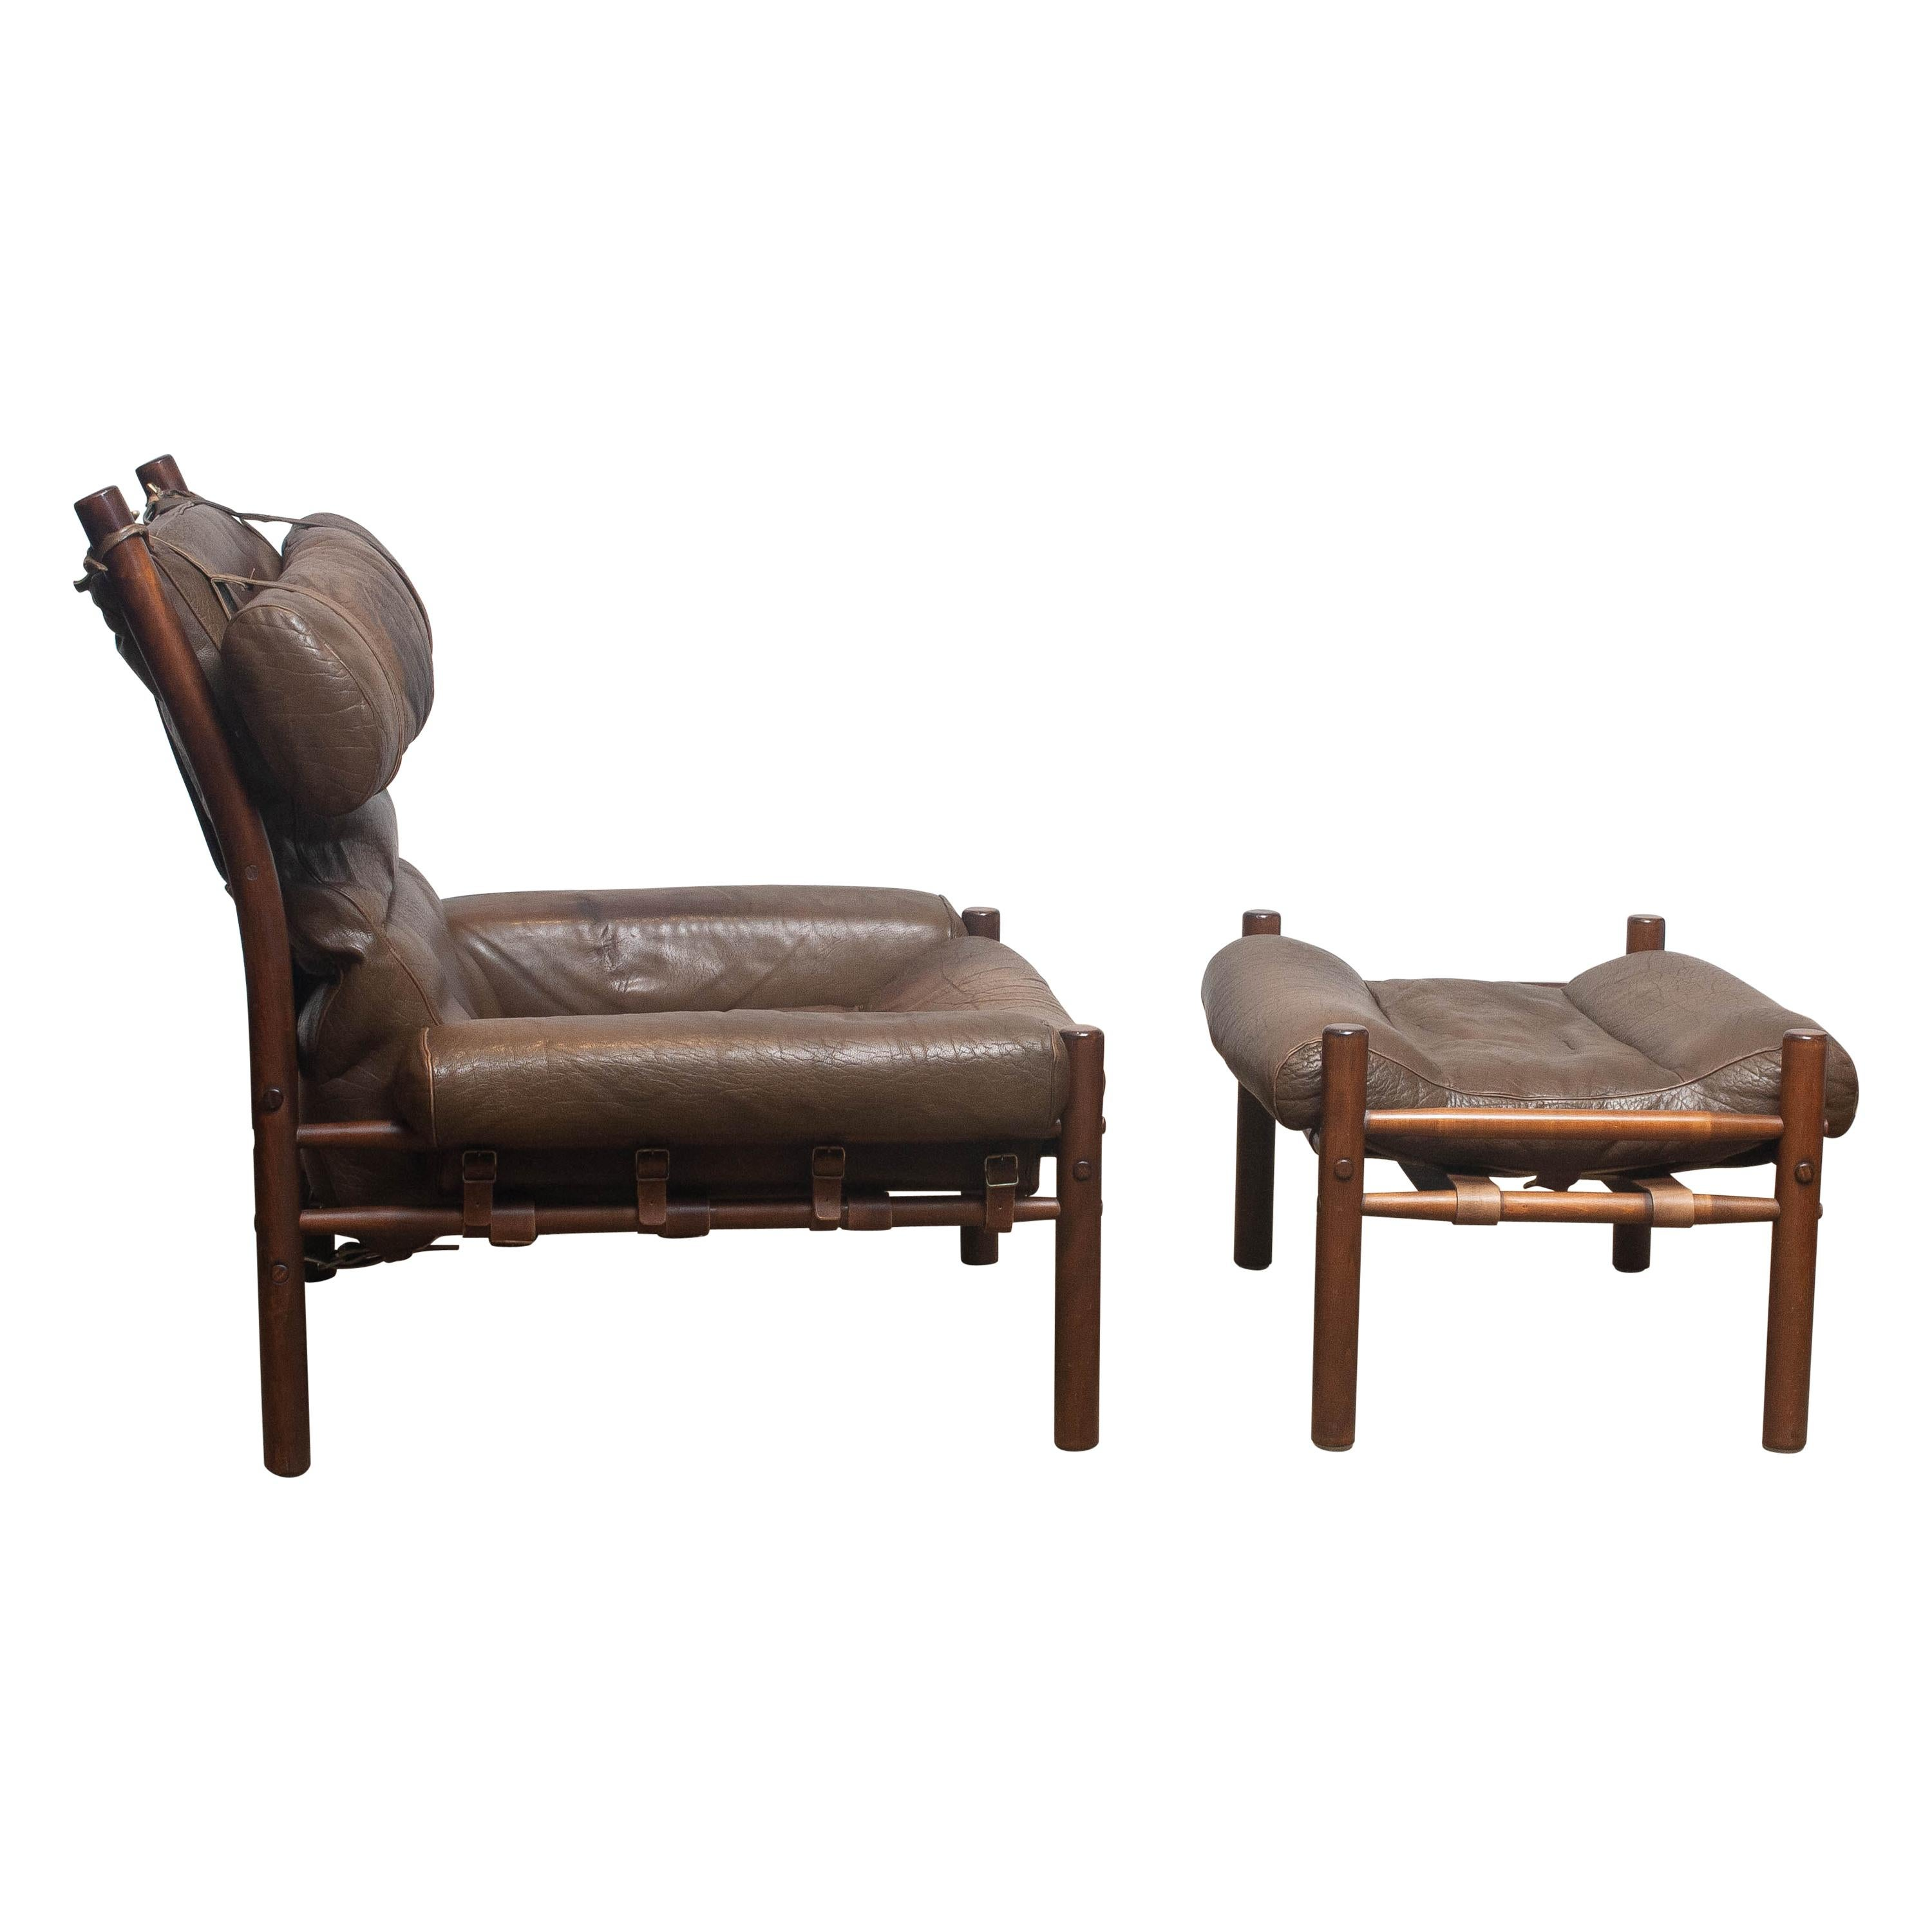 """1970s, Brown Leather Chair """"Inca"""" and Ottoman by Arne Norell Möbler AB, Sweden"""